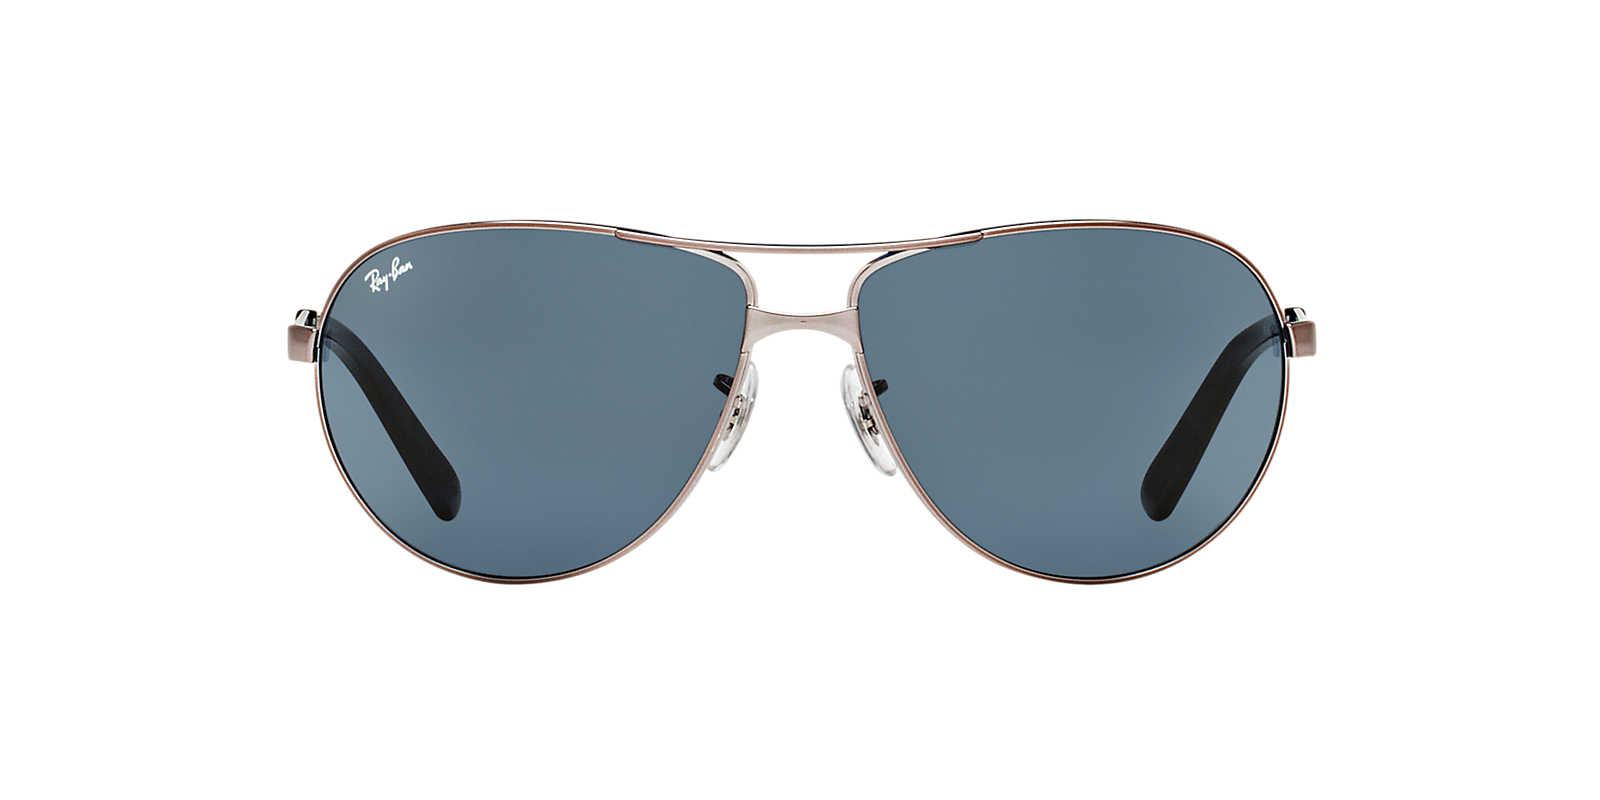 ray ban try on tool